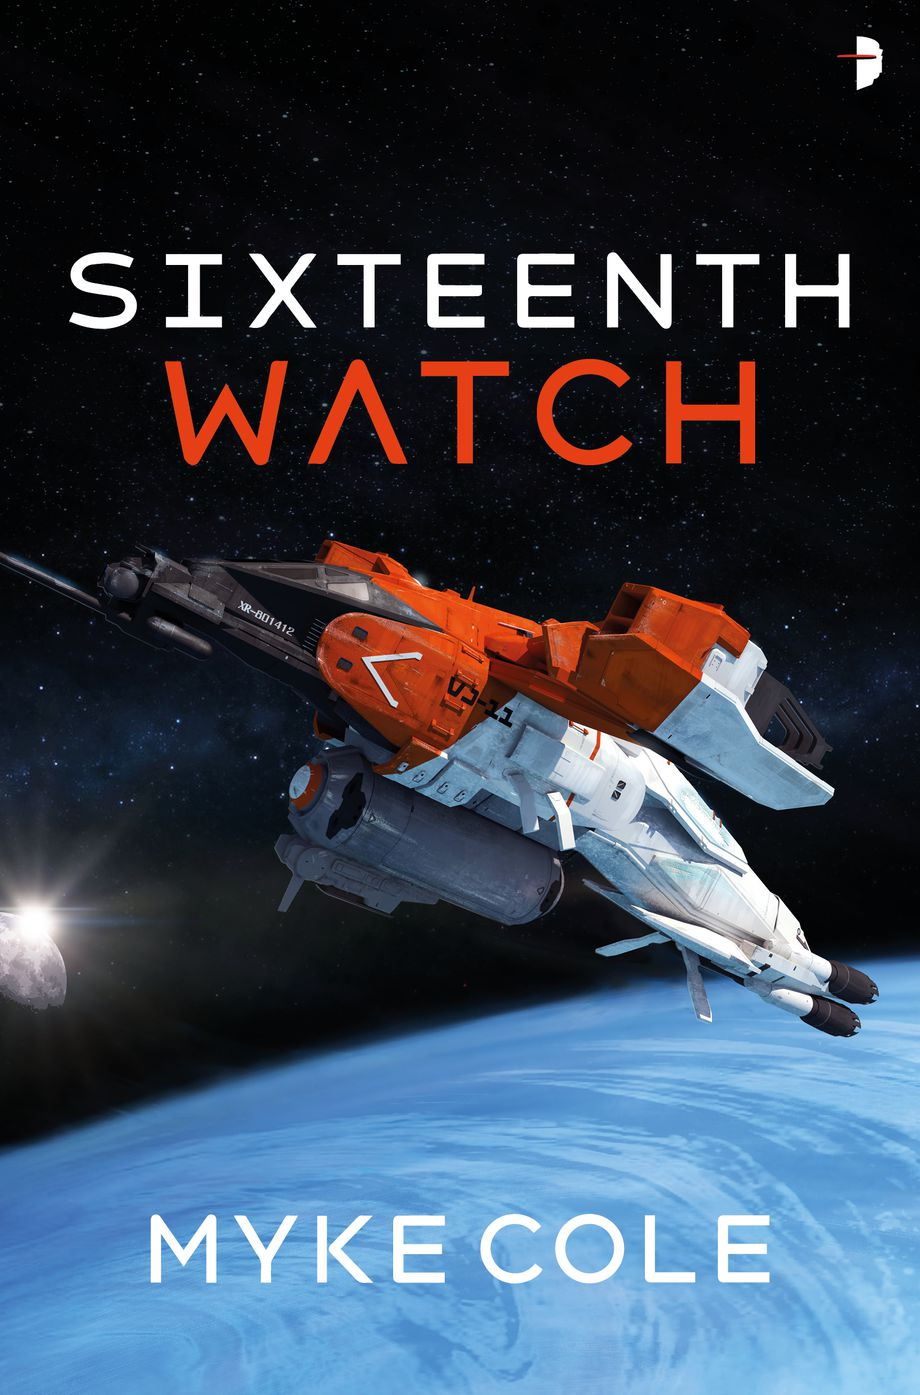 Image result for sixteenth watch